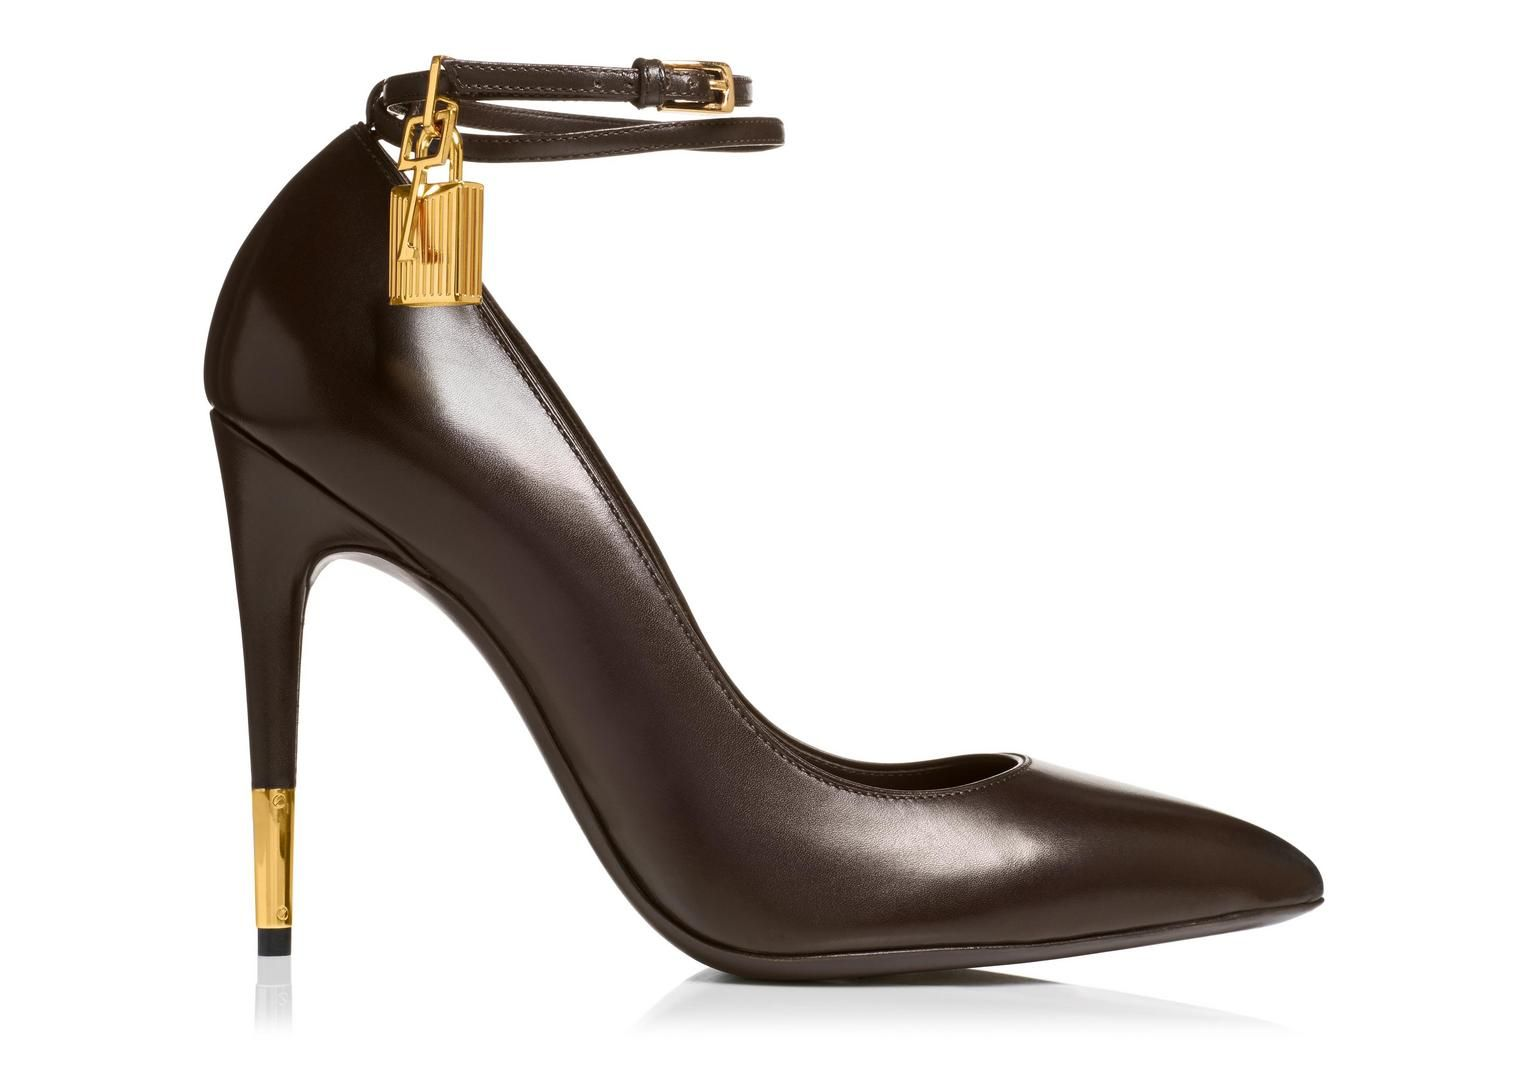 Hand-polished Calfskin Pump with Ankle Strap and Lock | Shop Tom Ford Online Store